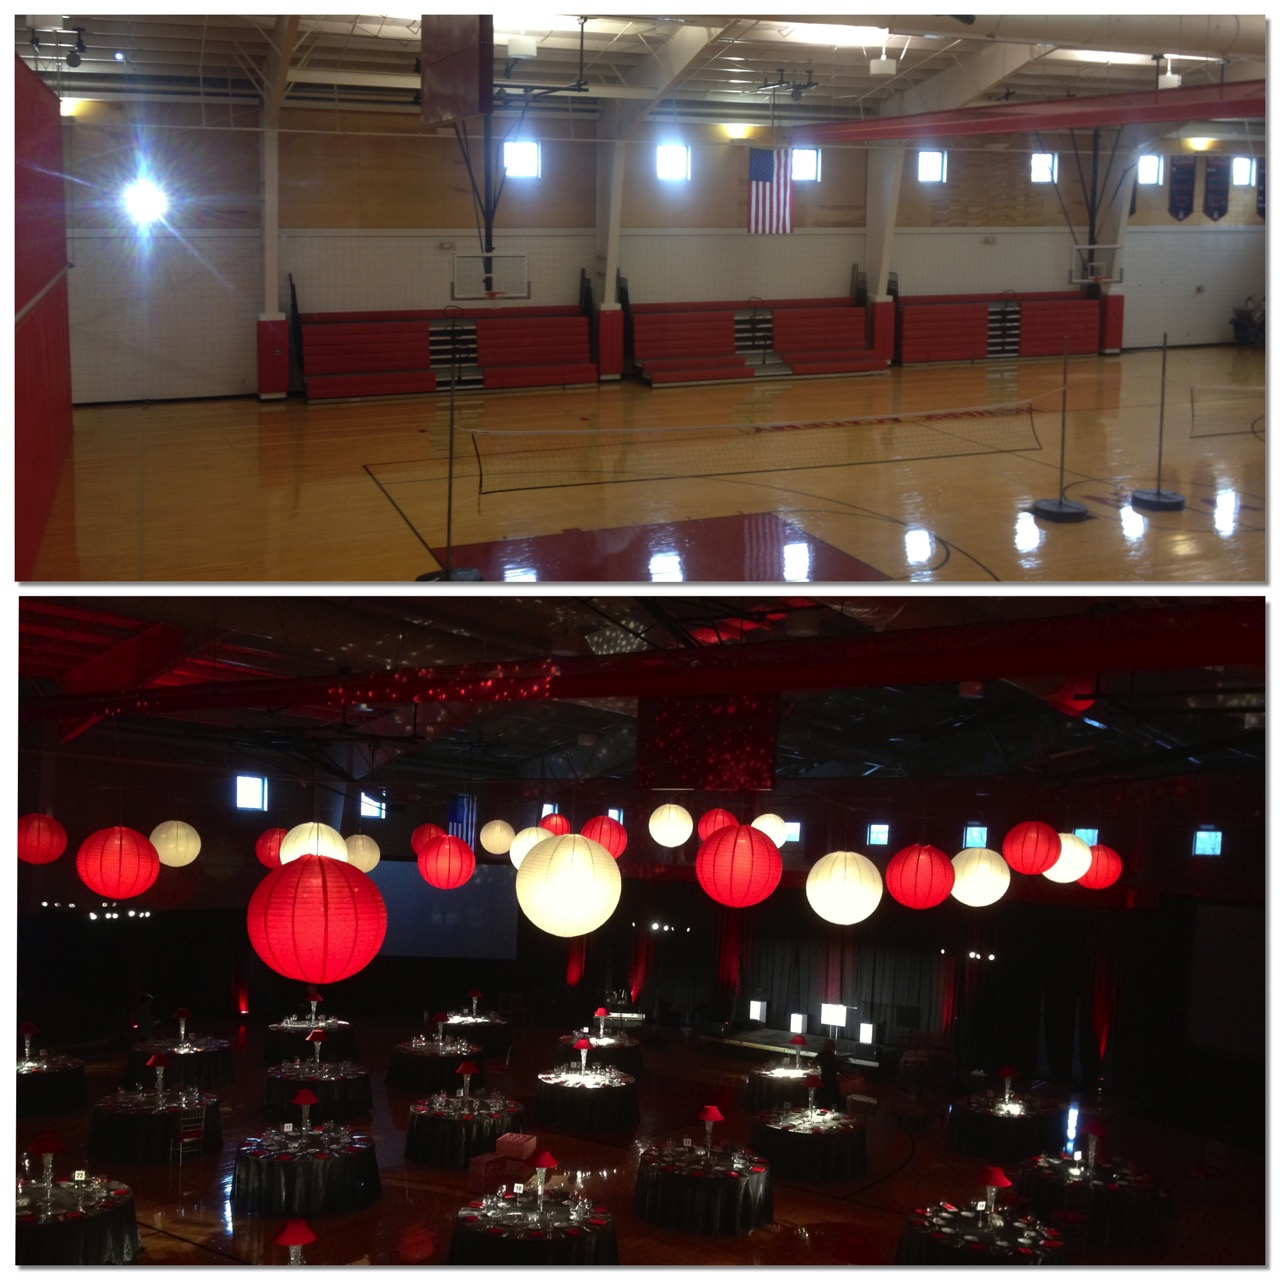 Before and After Event Design Lighting Draping Room Decor by Eggsotic Events  - 1.jpg